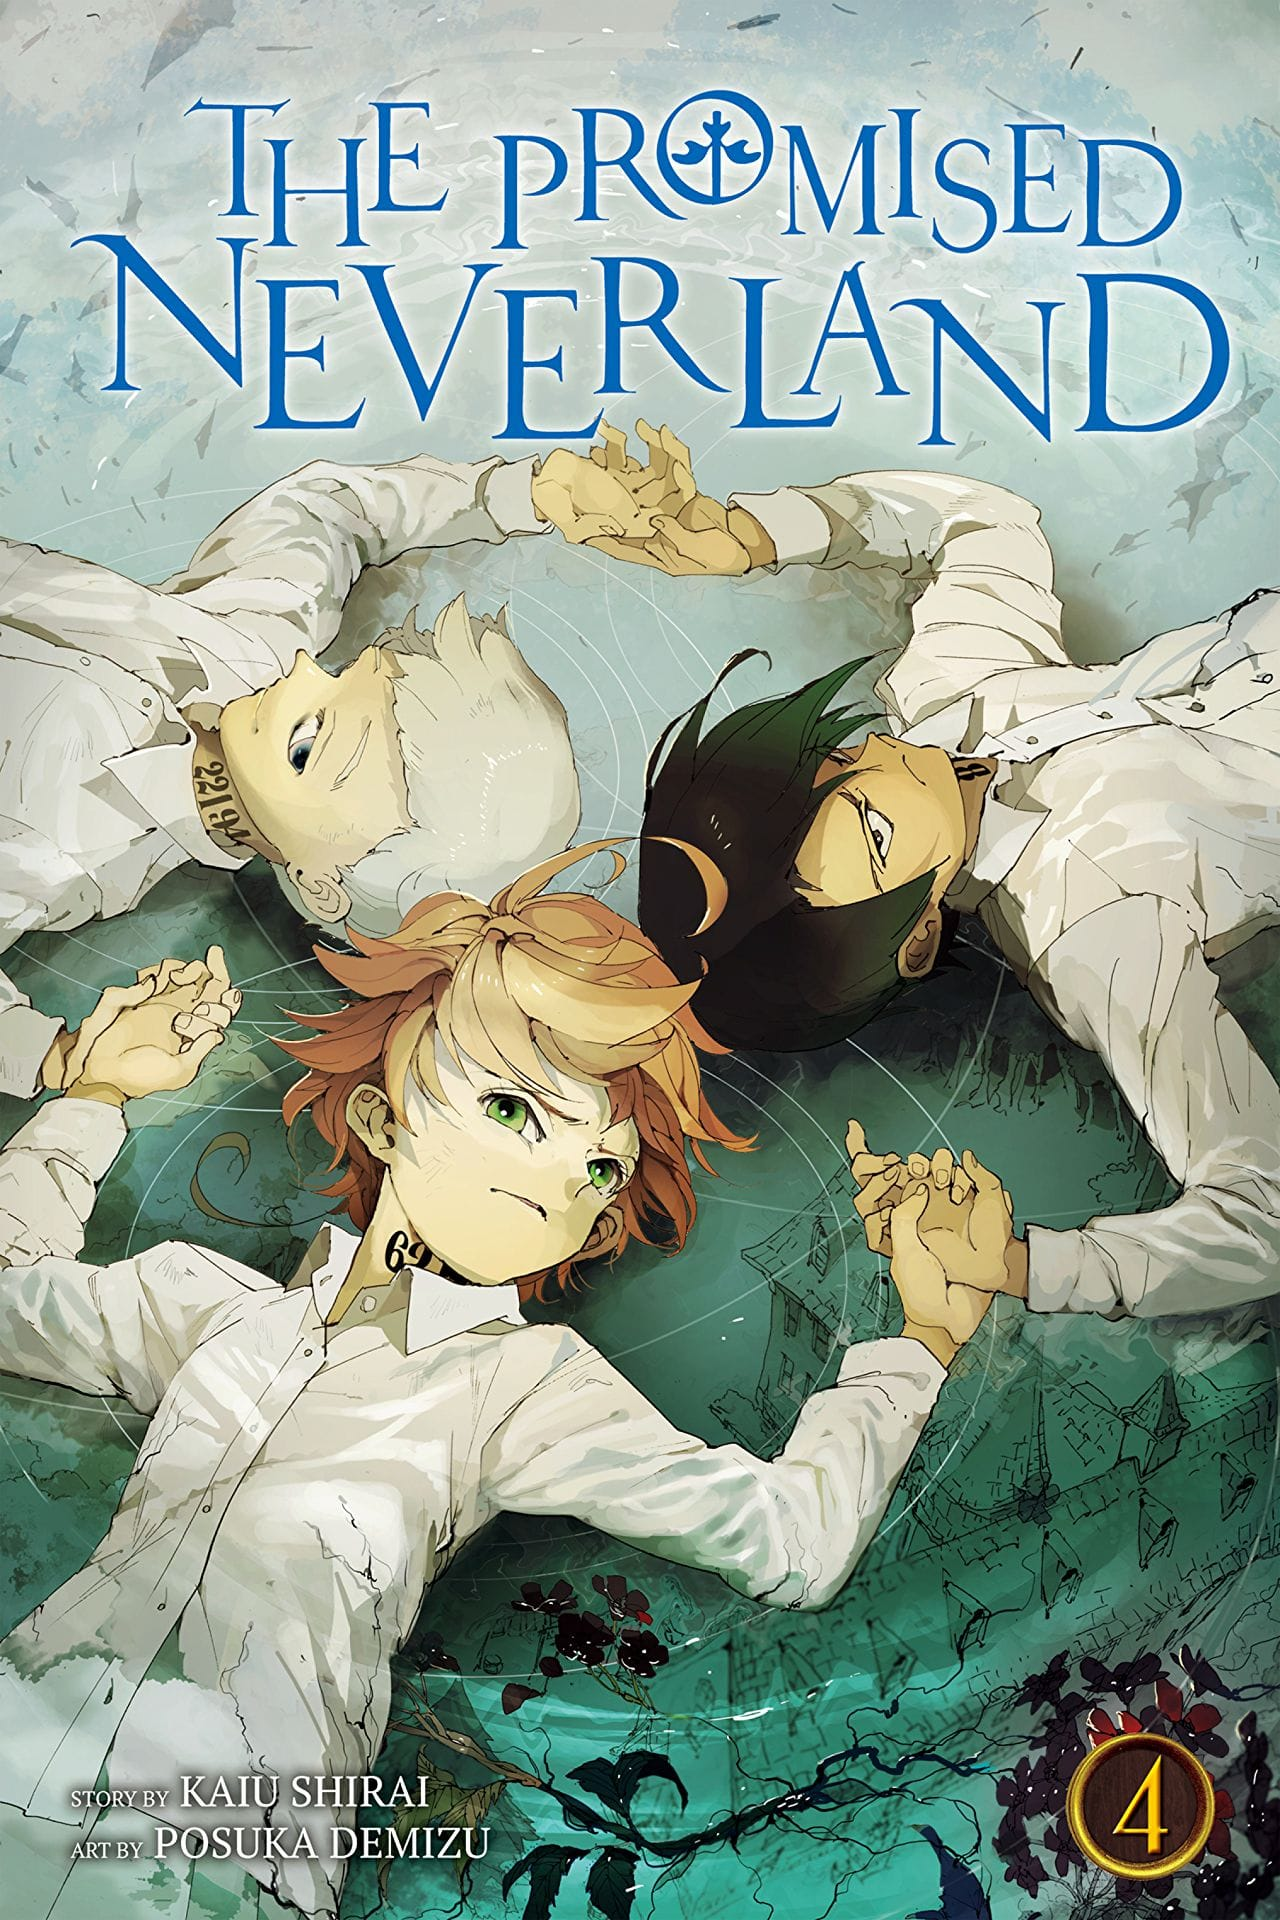 The Promised Neverland Vol. 4 Review